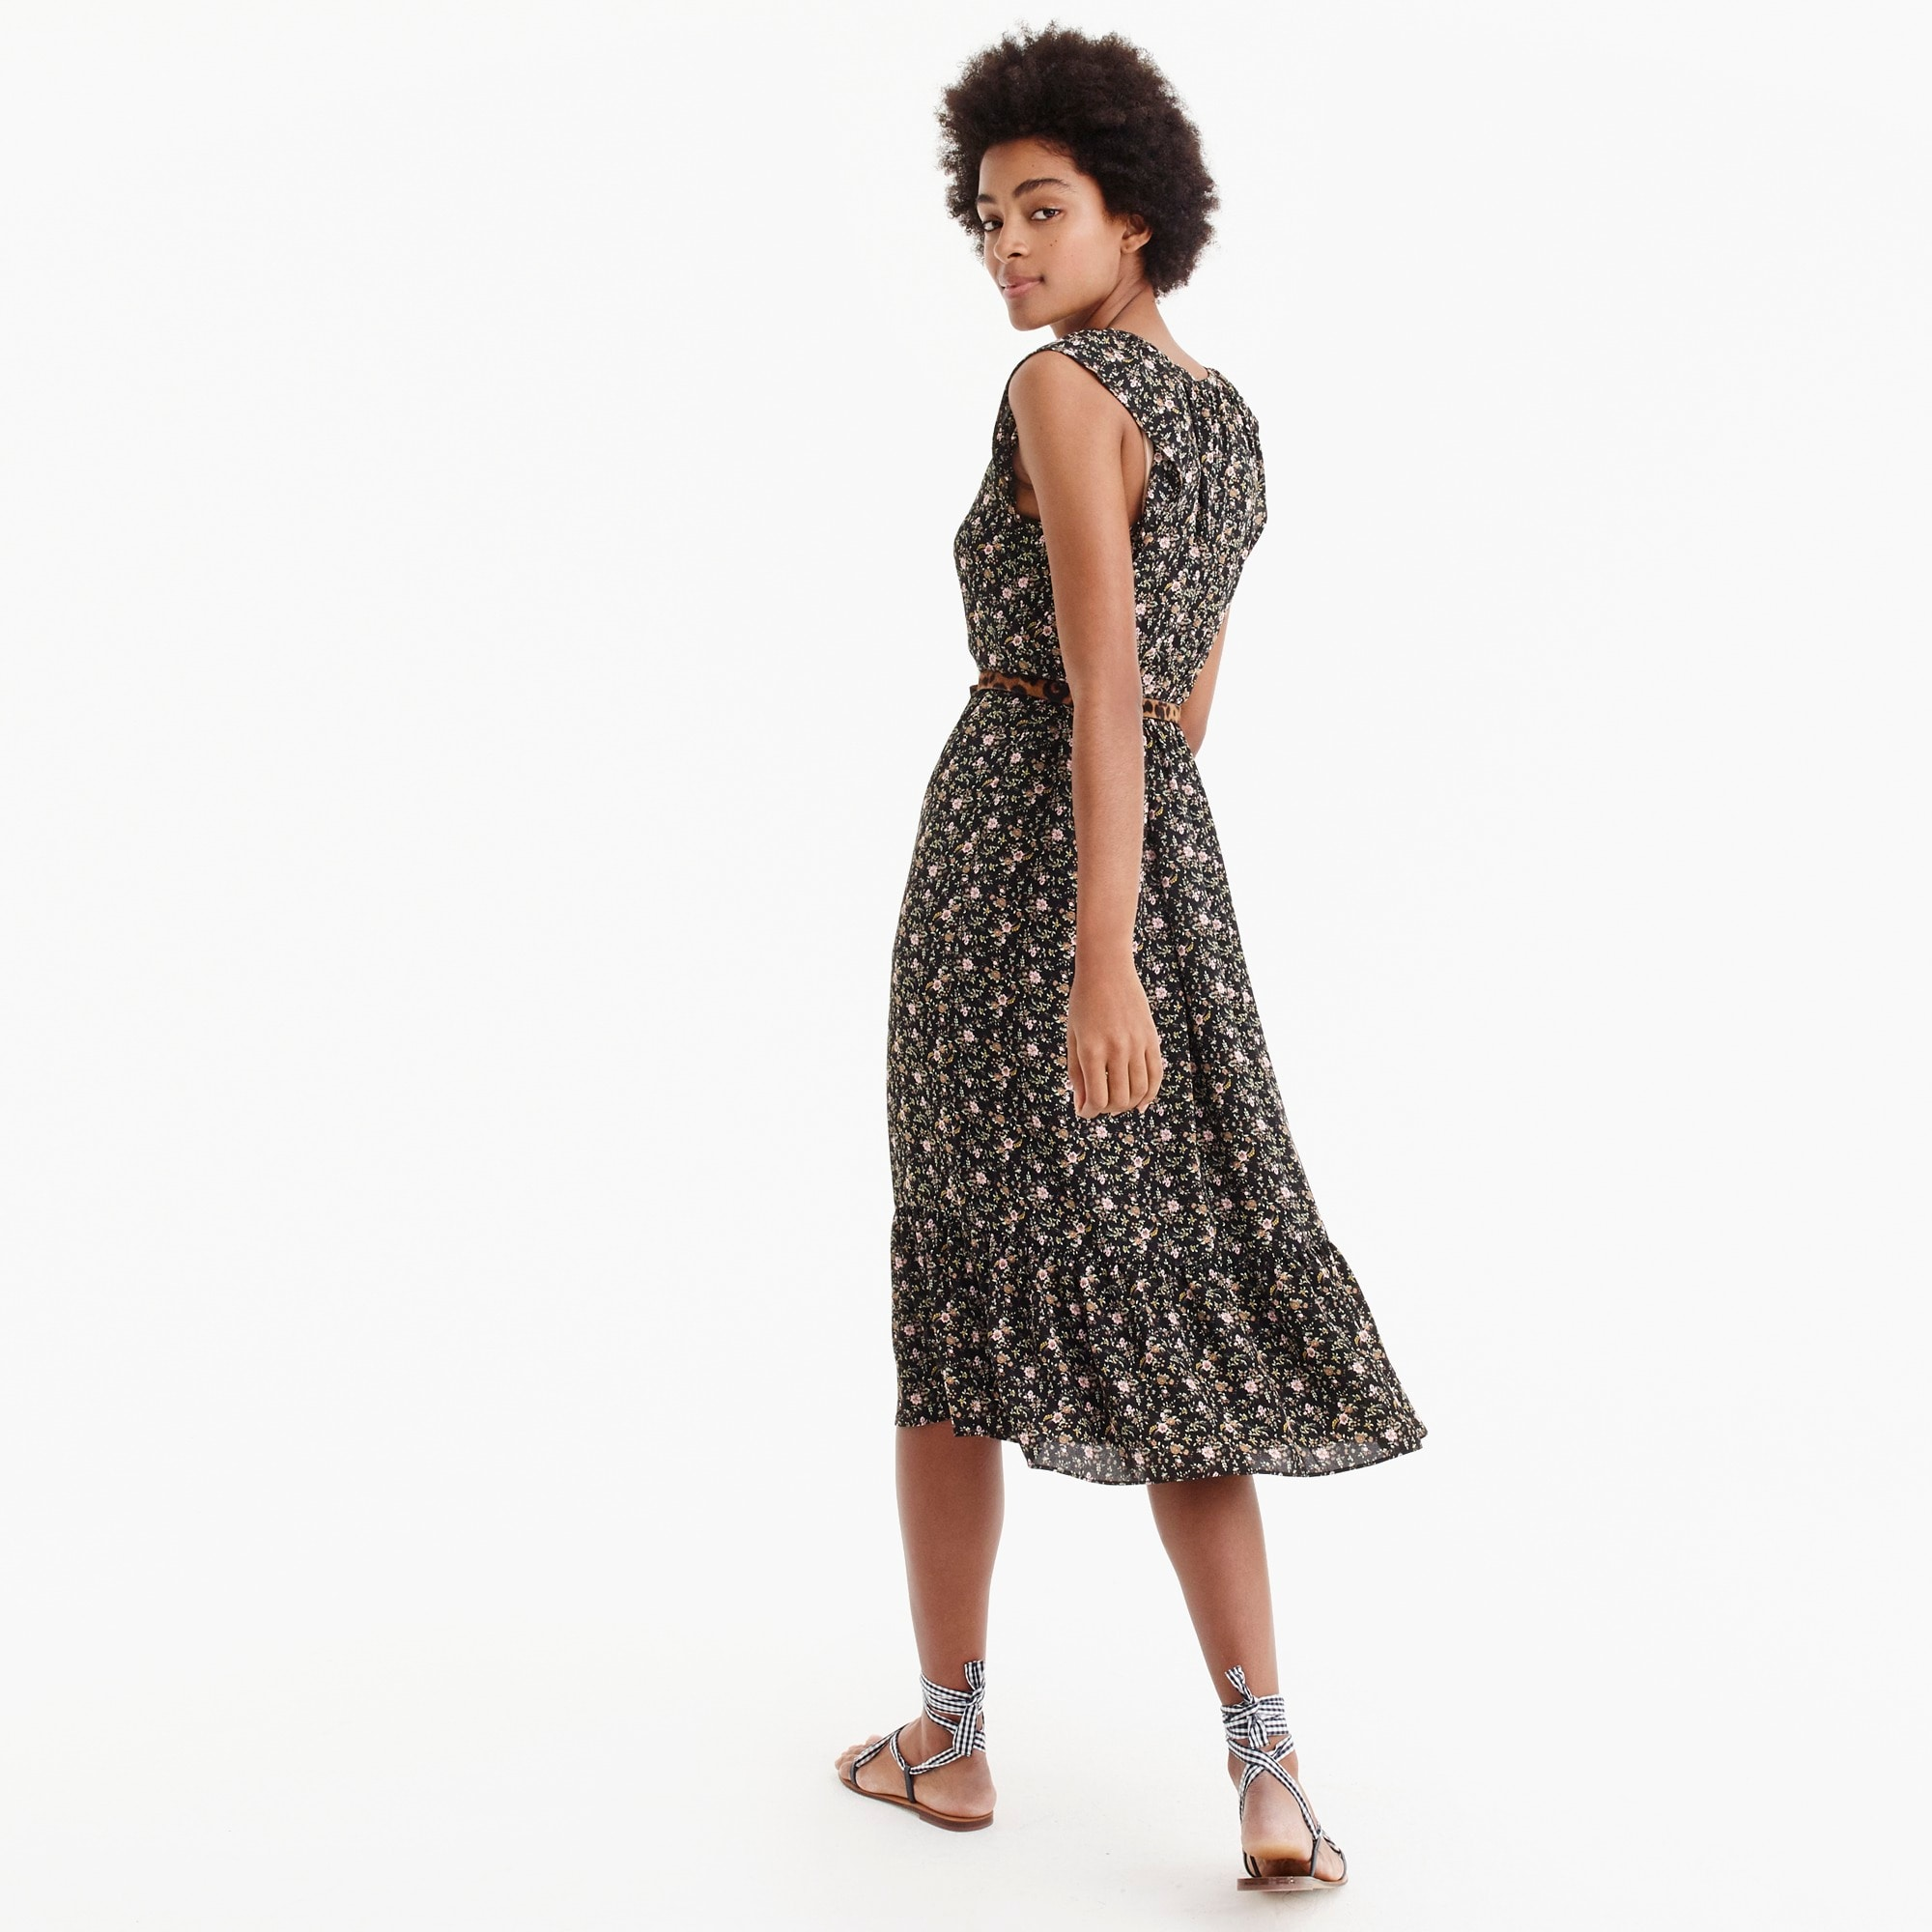 J.Crew Mercantile cap-sleeve midi dress in superbloom